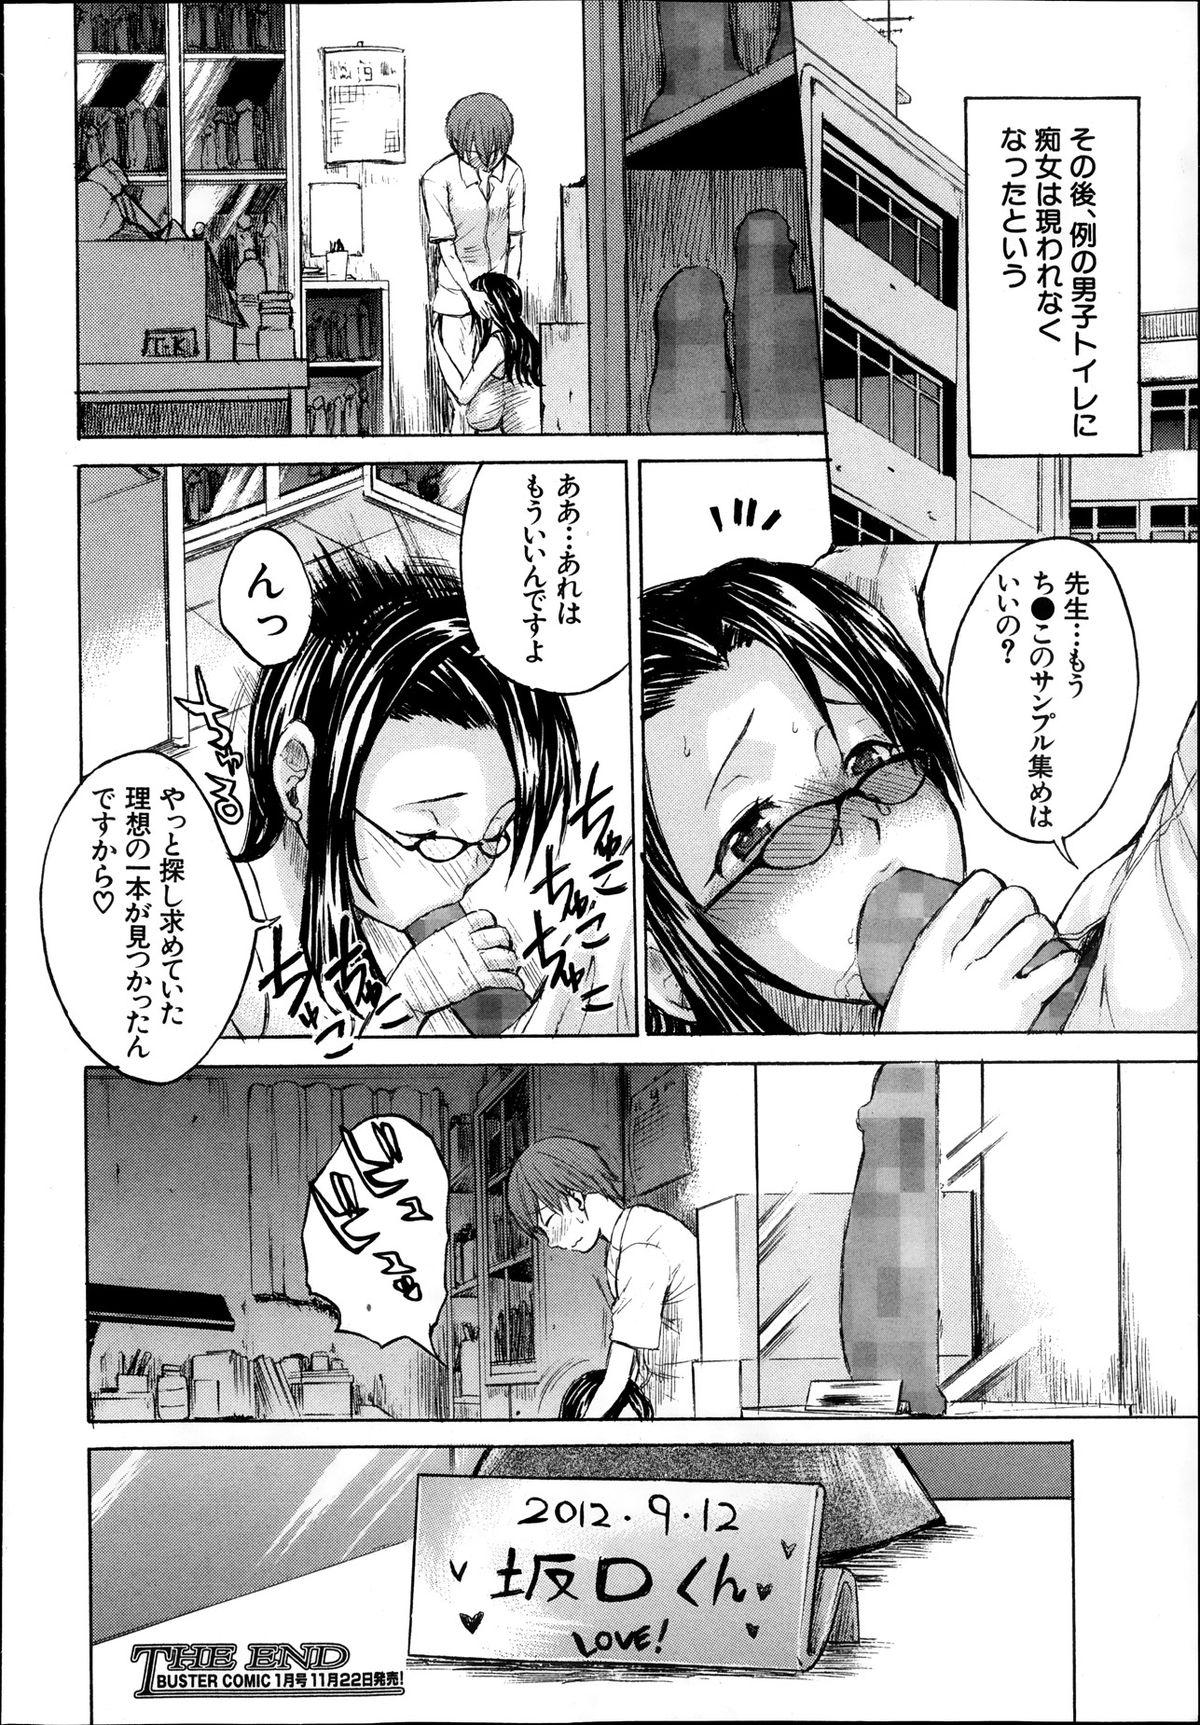 BUSTER COMIC 2013-11 450